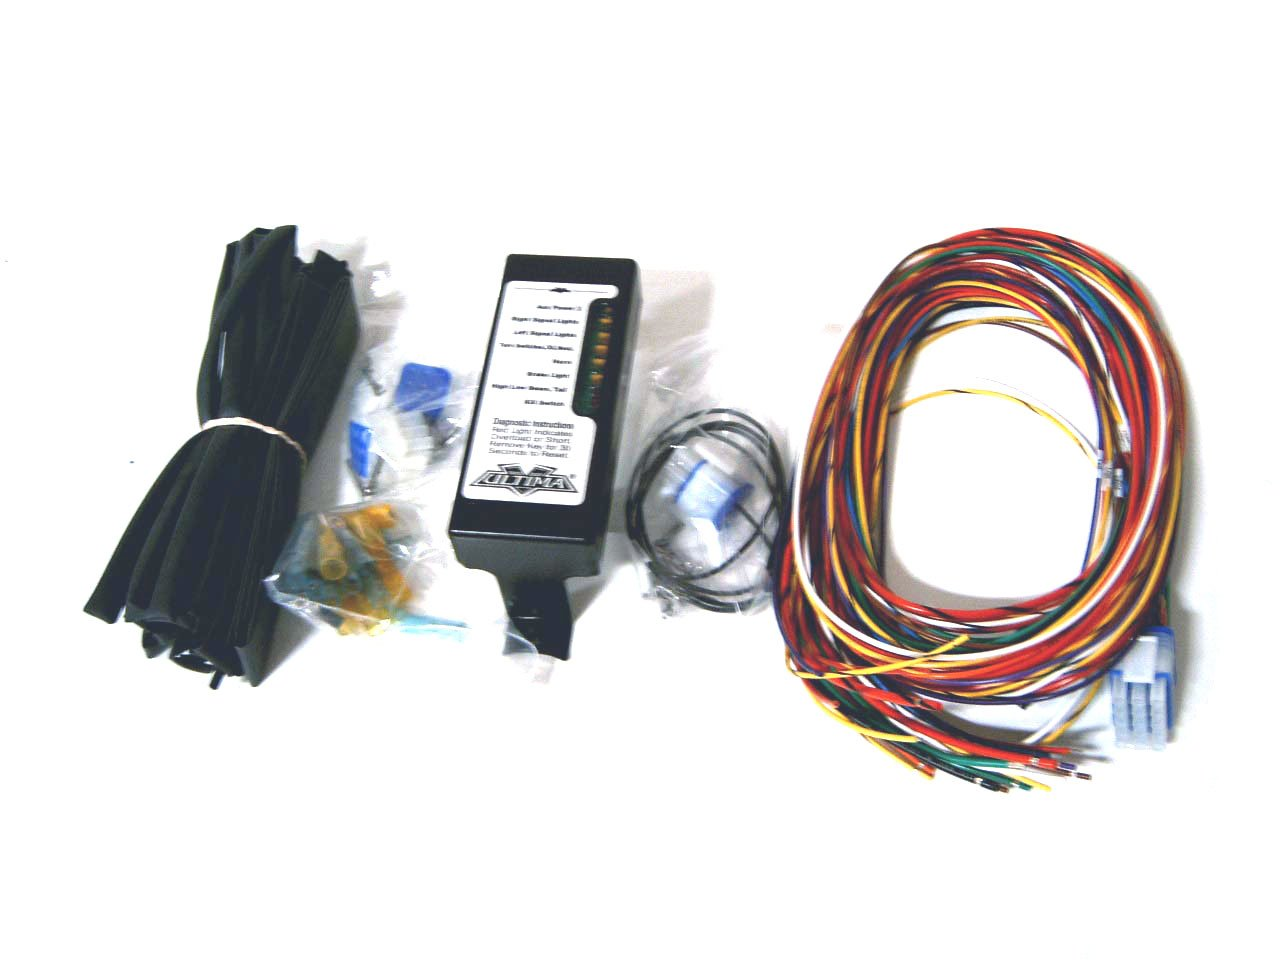 61DV2Bq5%2BHL._SL1280_ amazon com ultima complete wiring harness kit for harley davidson where to buy a trailer wiring harness at panicattacktreatment.co